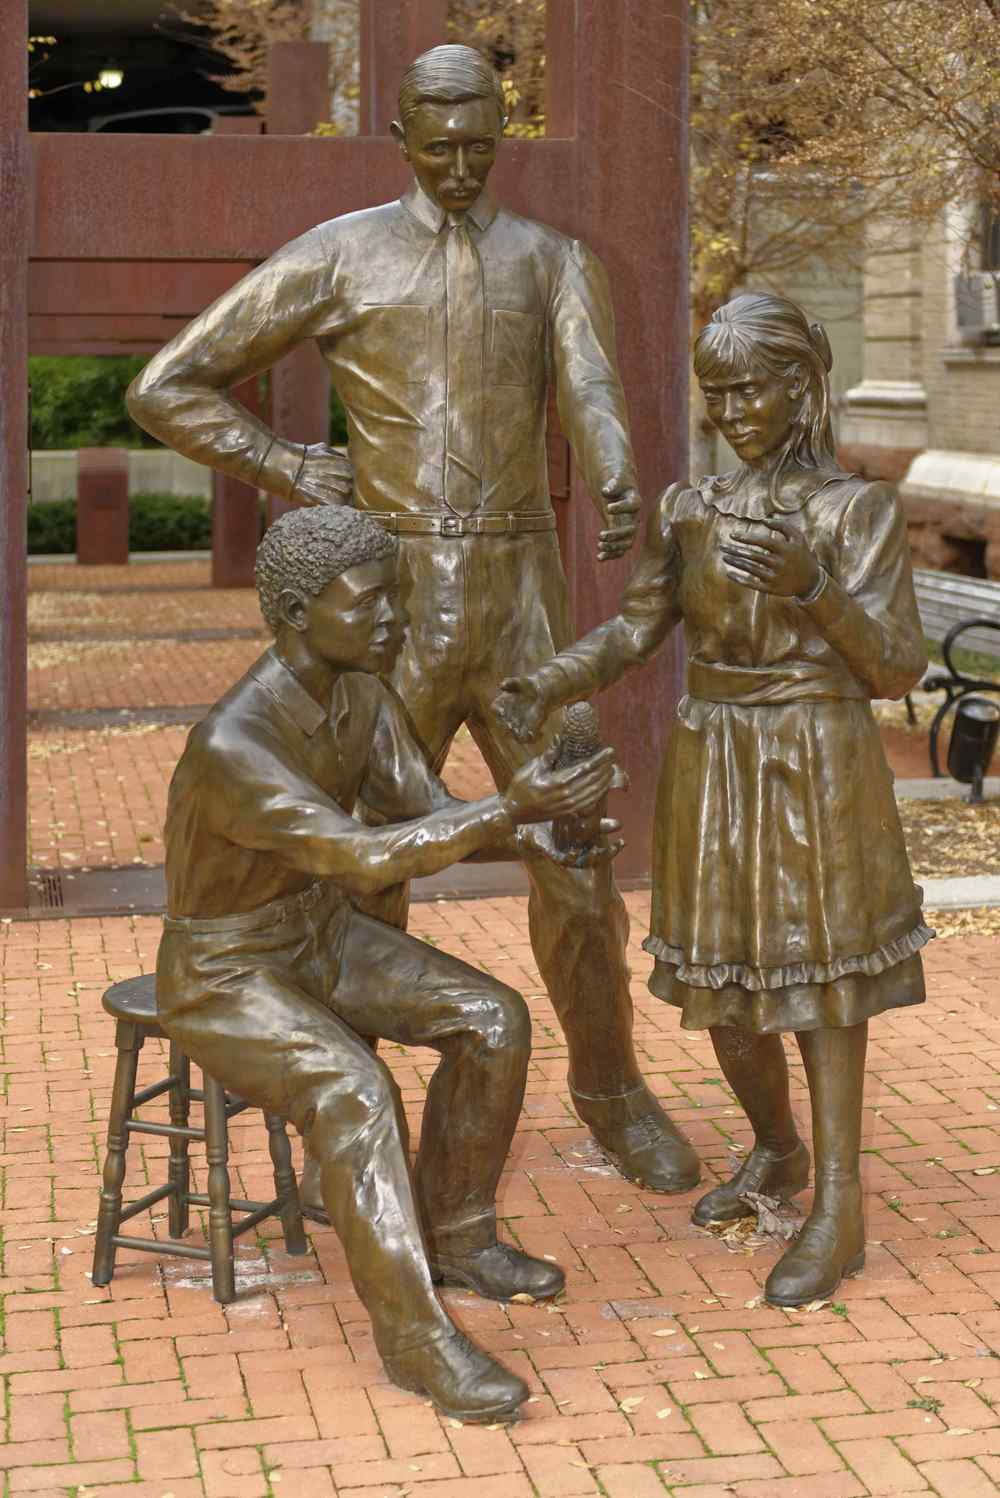 Sculpture by Mike Major showing a youthful A. B. Graham with two of his early club members as they present their projects, in downtown Springfield, Ohio, 2015. Image source:  The Ohio Academy of Science